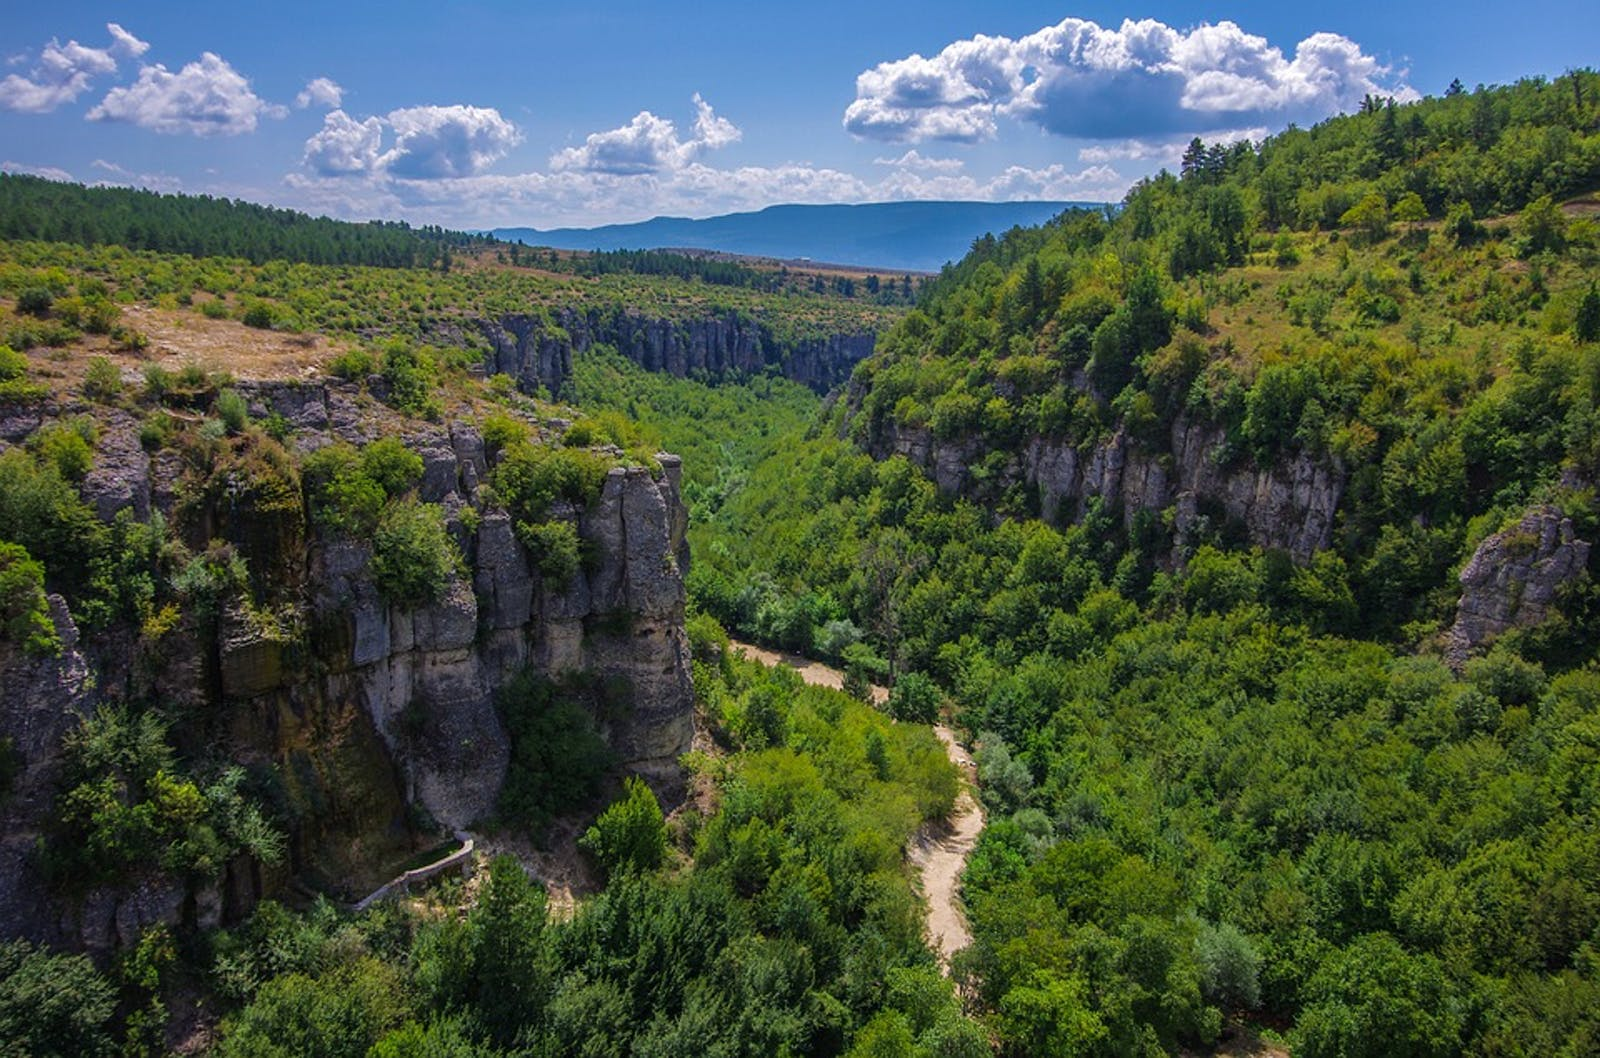 Northern Anatolian Conifer and Deciduous Forests